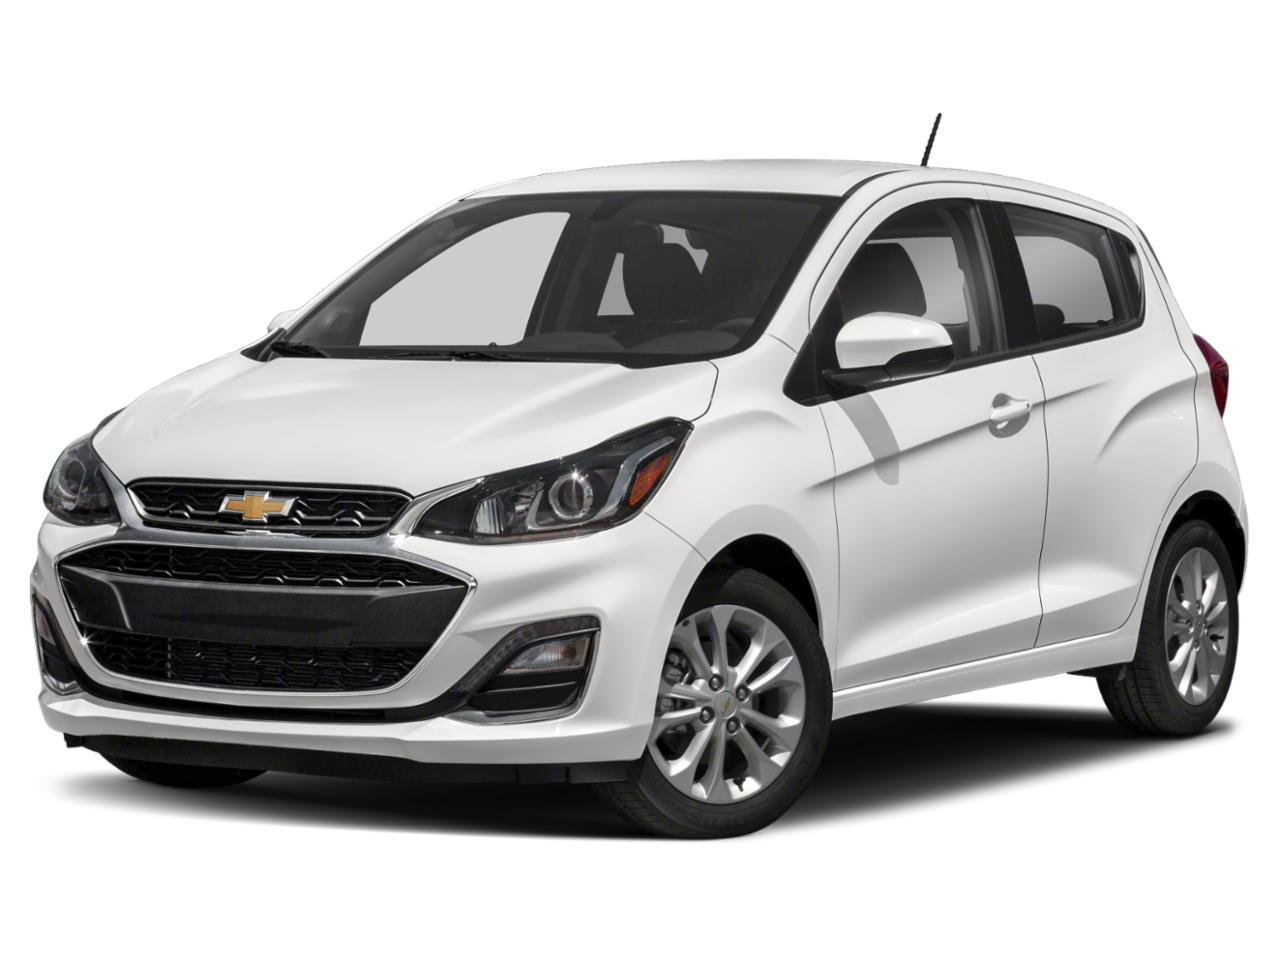 2021 Chevrolet Spark Vehicle Photo in Columbia, MO 65203-3903